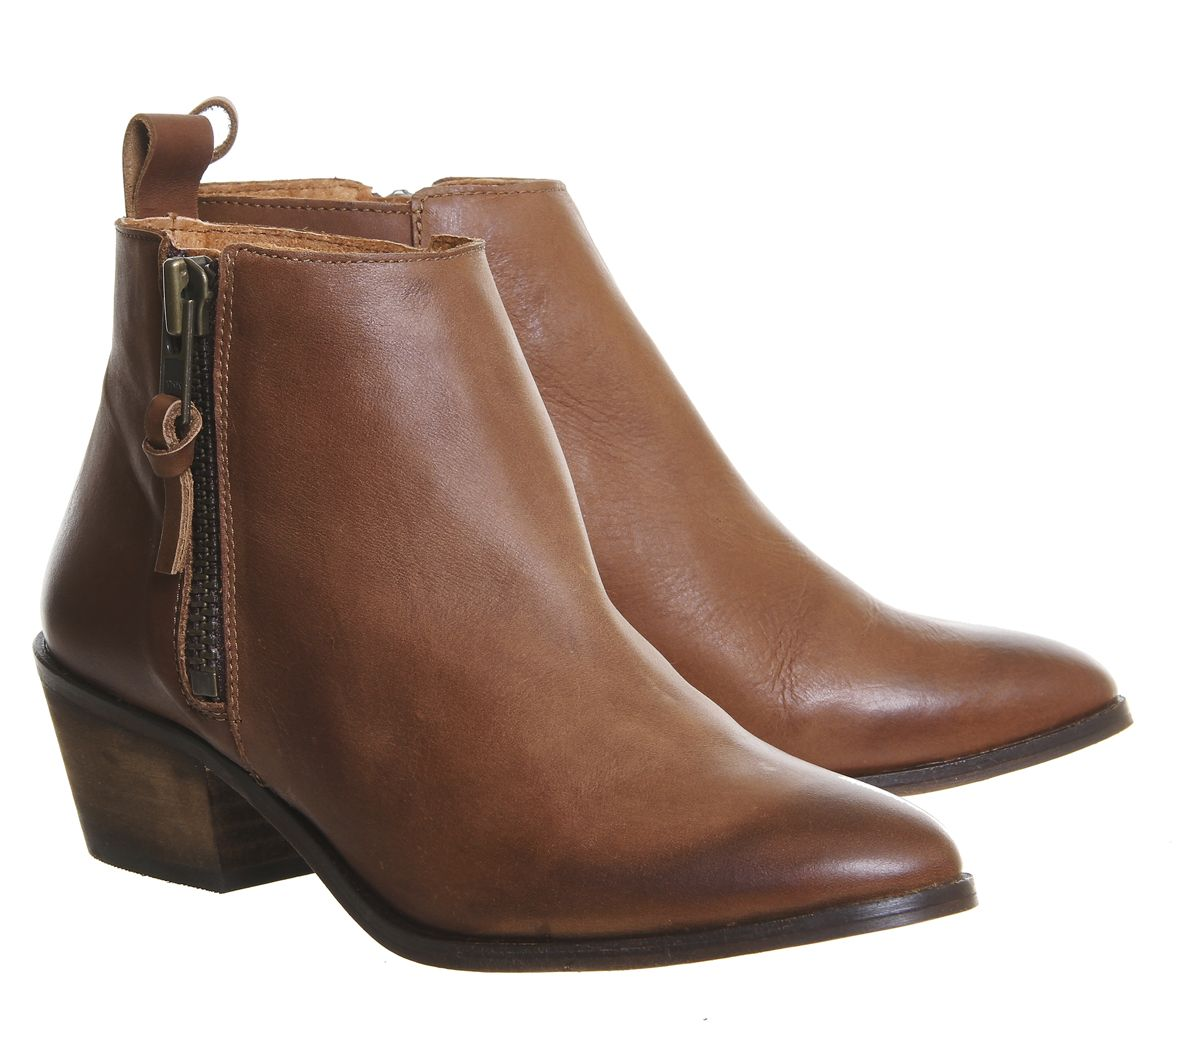 c96dee5c194 Buy Tan Leather Office Imposter Side Zip Ankle Boots from OFFICE.co ...